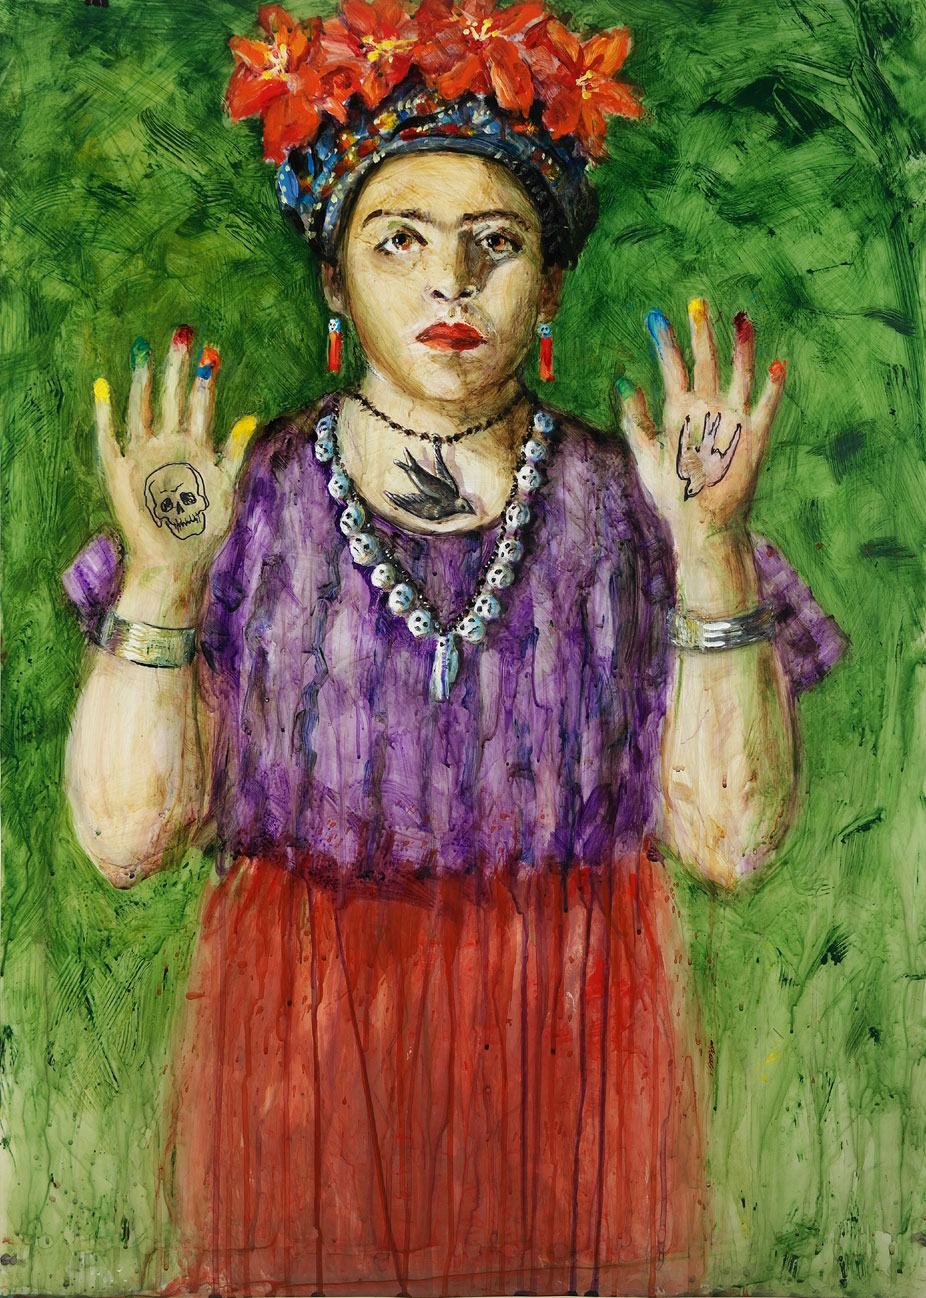 char-M-as-Frida-Kahlo-42-x-